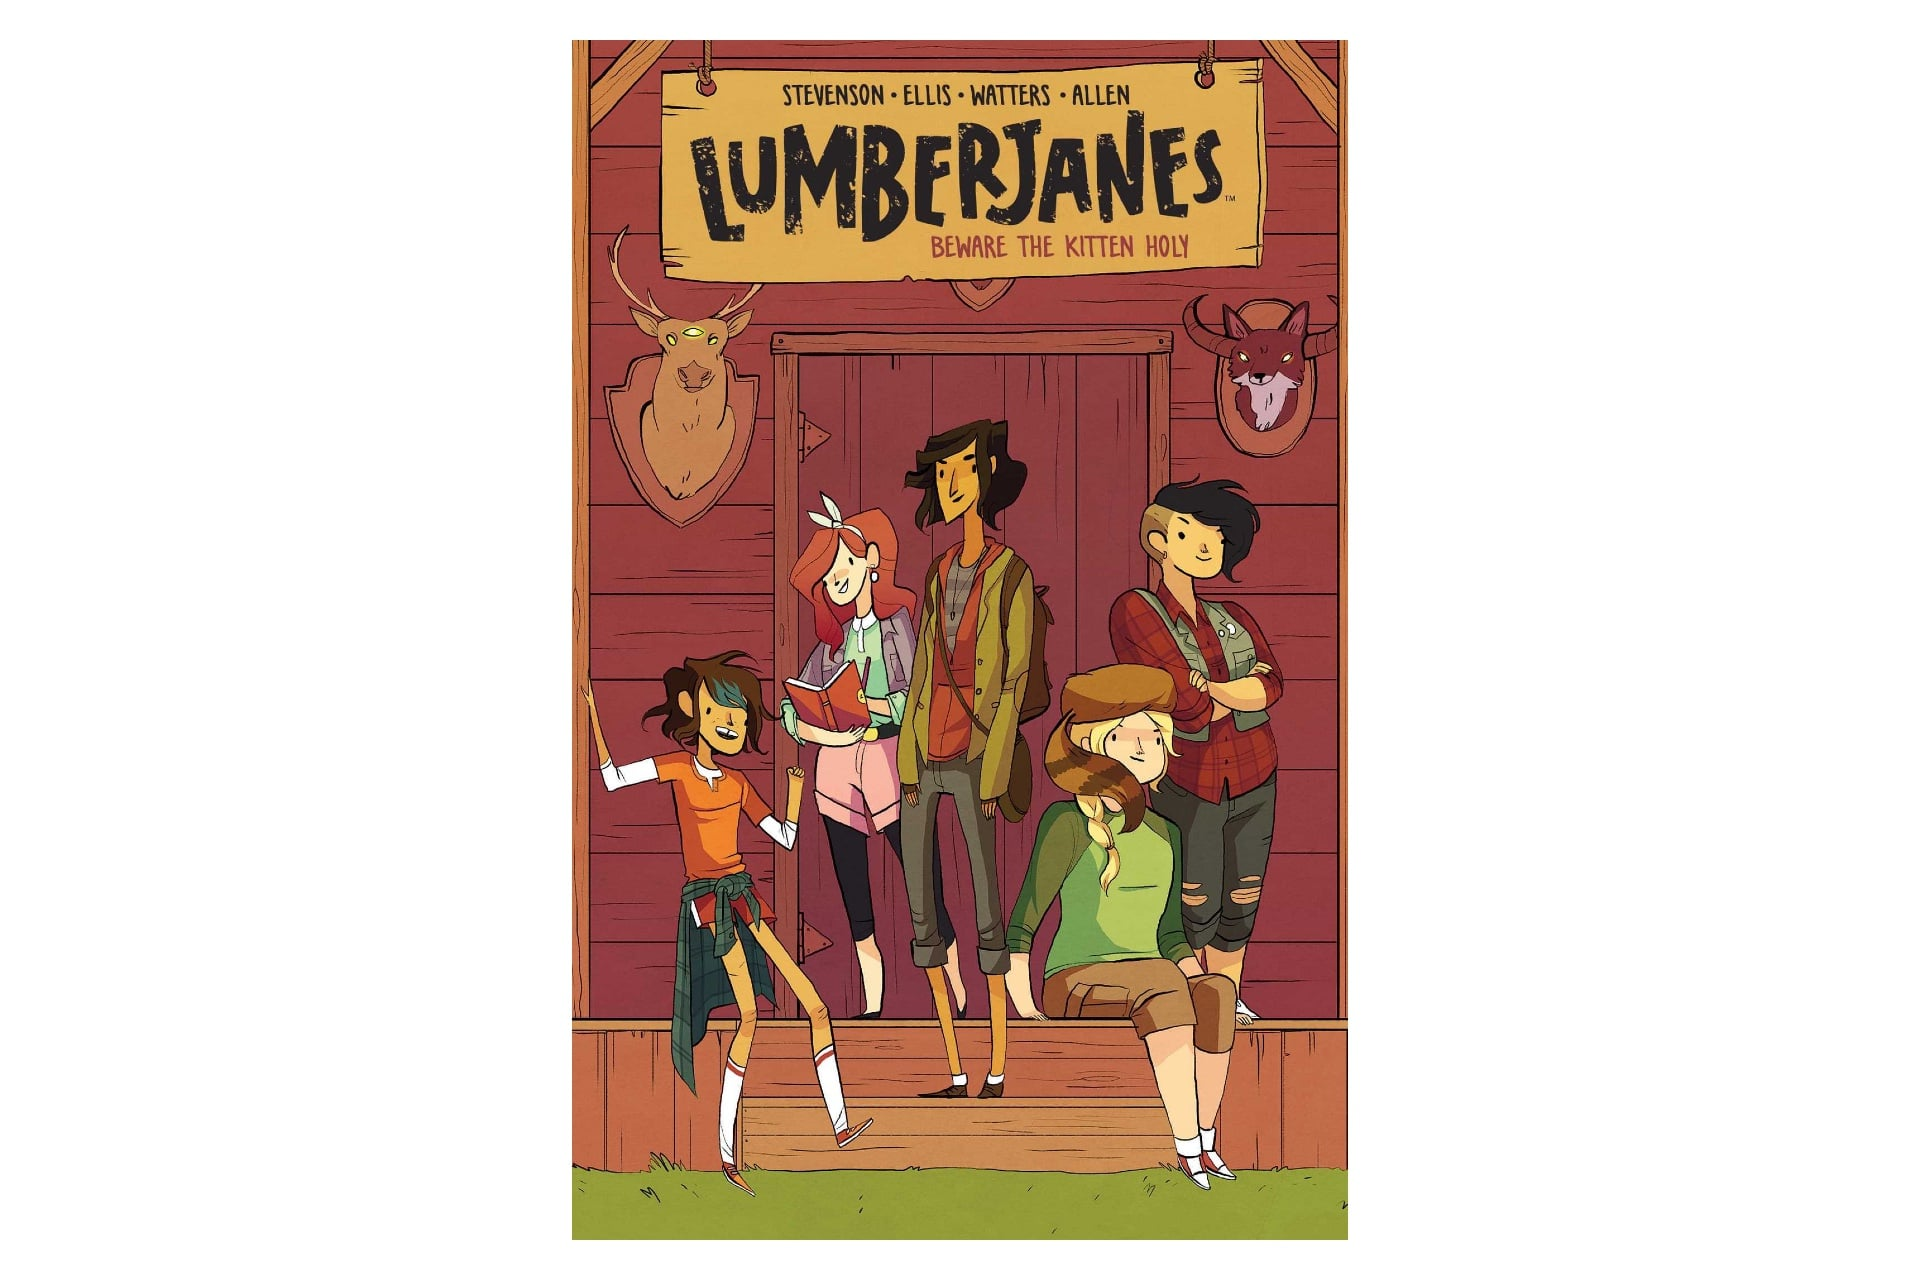 book cover depicting comic-style illustration with a group of female friends outside of a barn